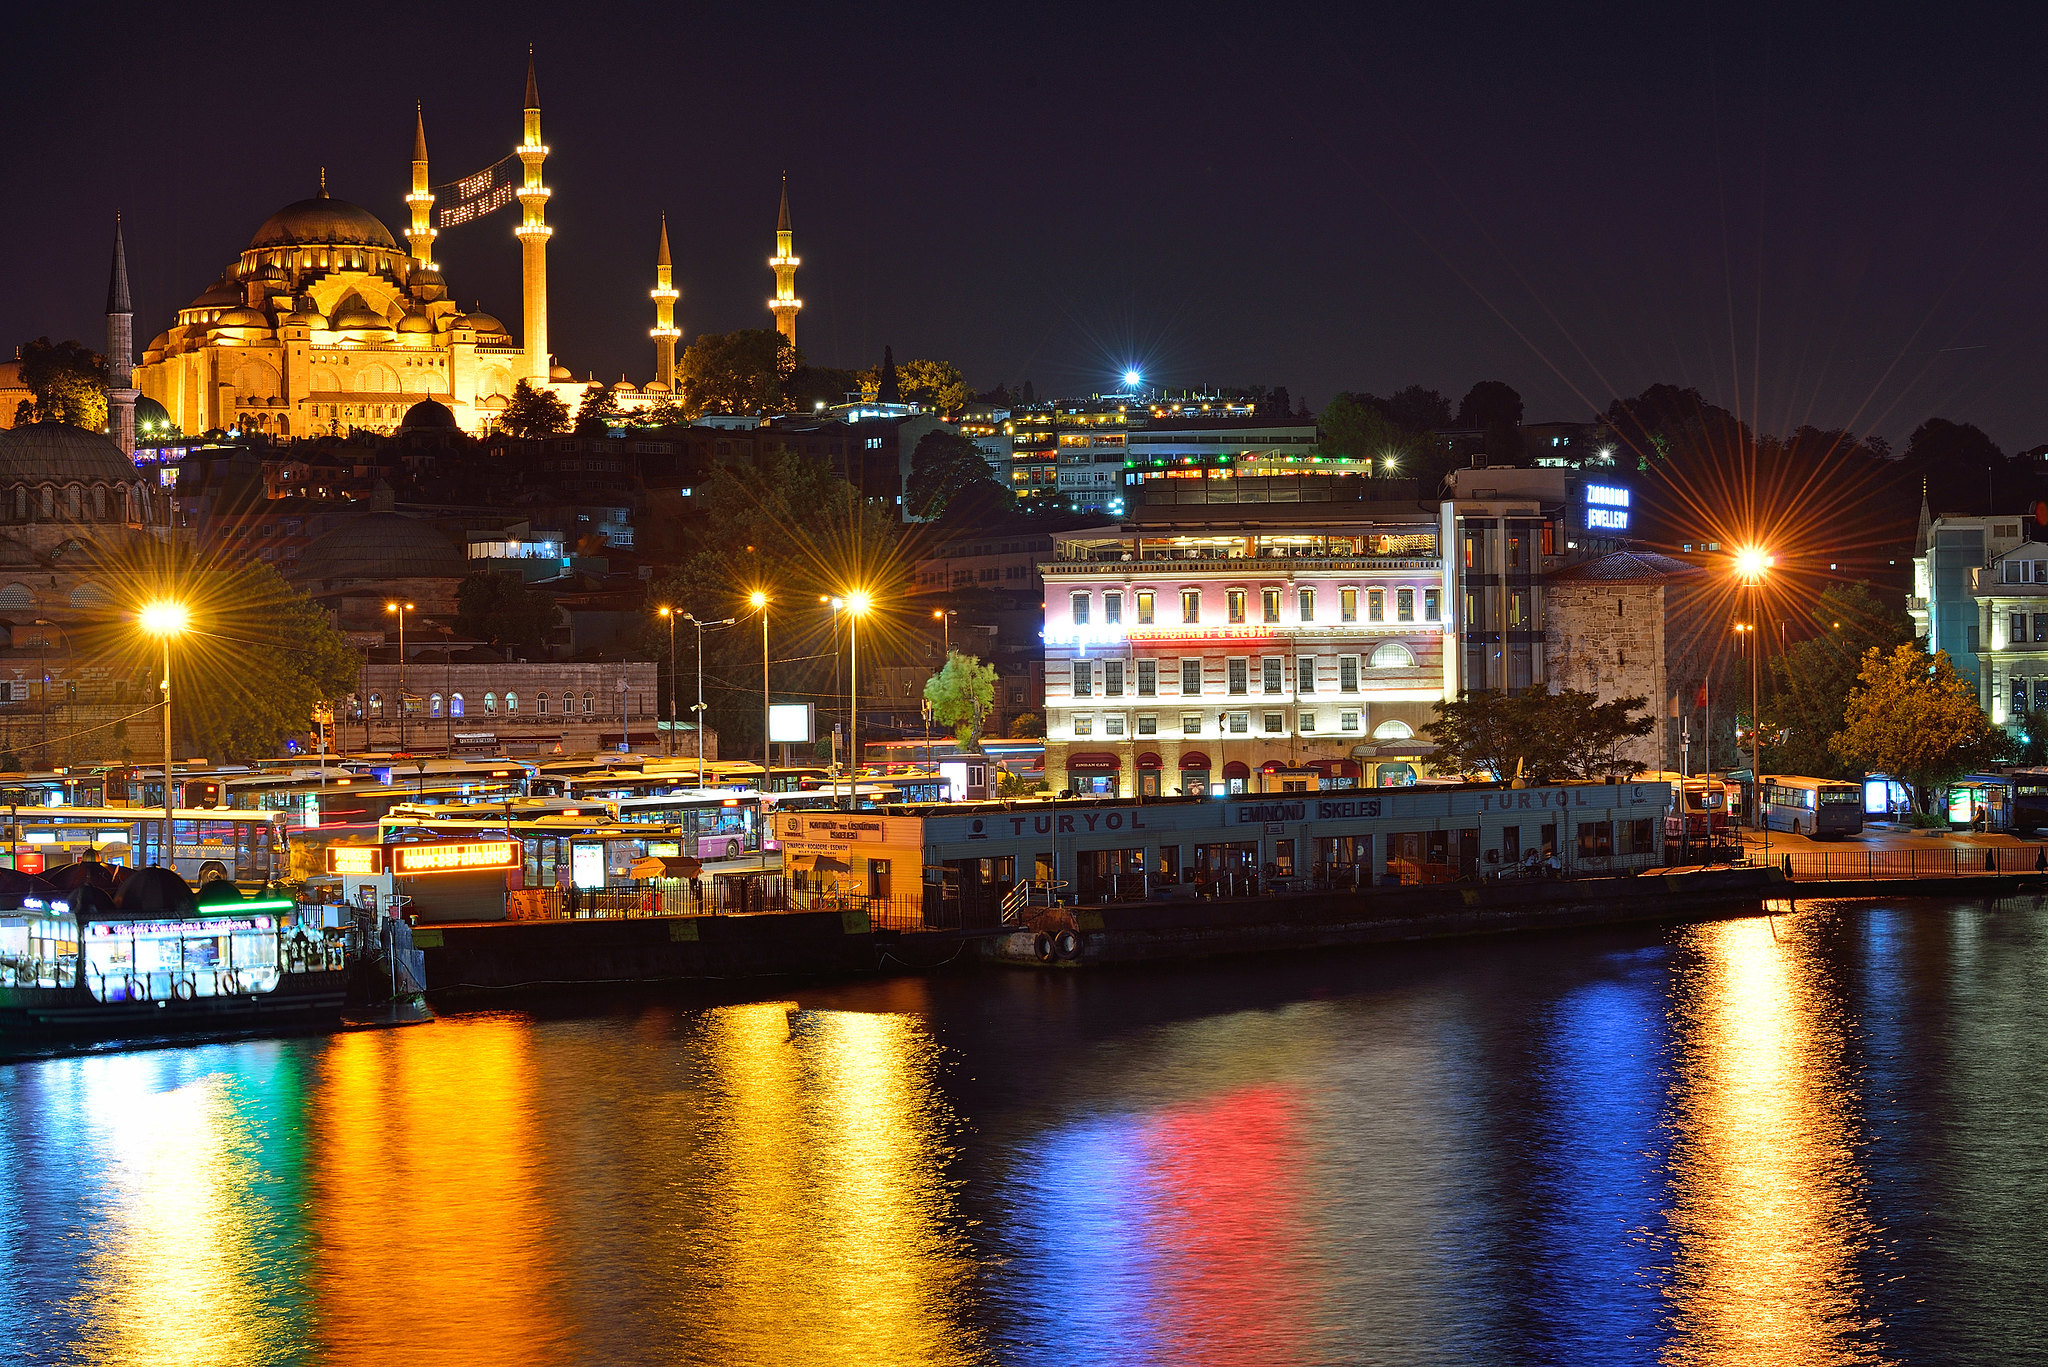 Istanbul at night with Suleymaniye Mosque and beautiful multi-colored reflections in the water of the Golden Horn Bay. View from Galata Bridge.